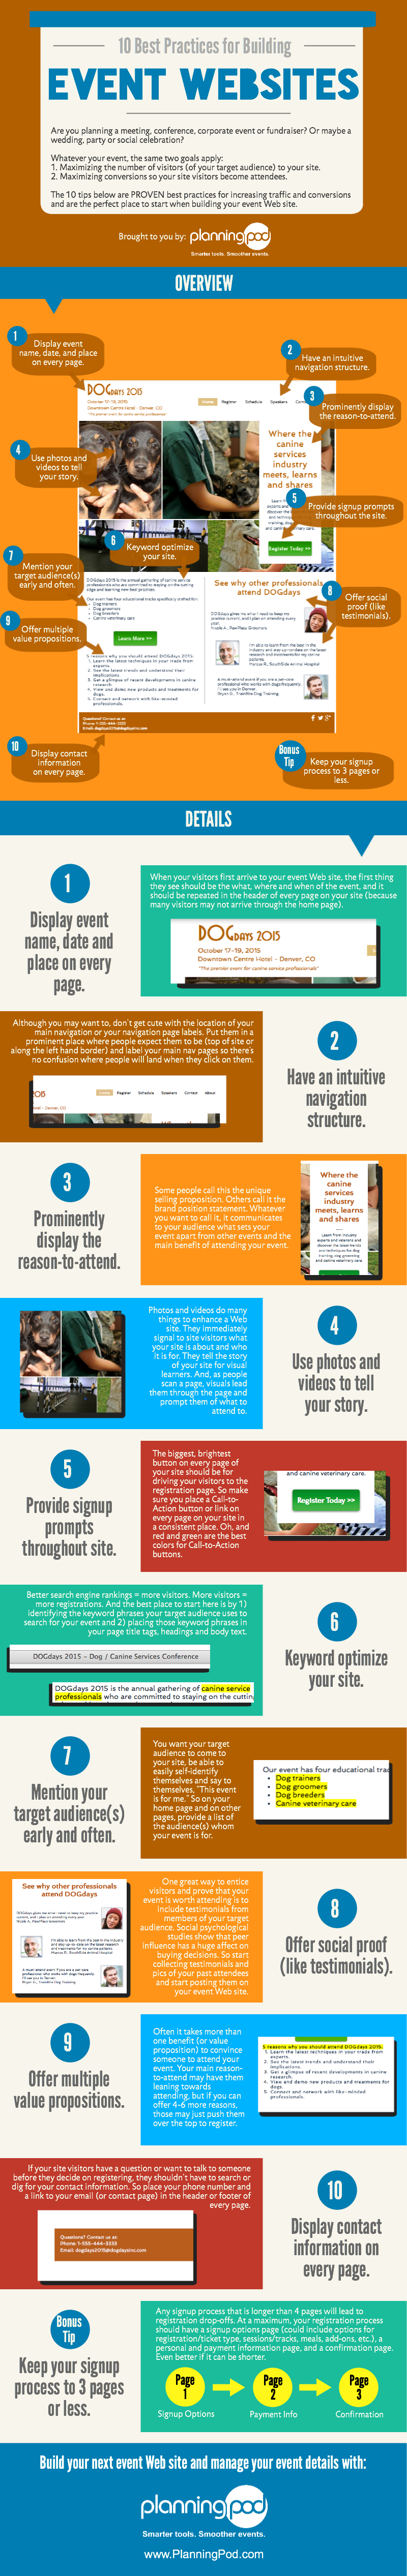 10 best practices for building event websites infographic for How to plan a website